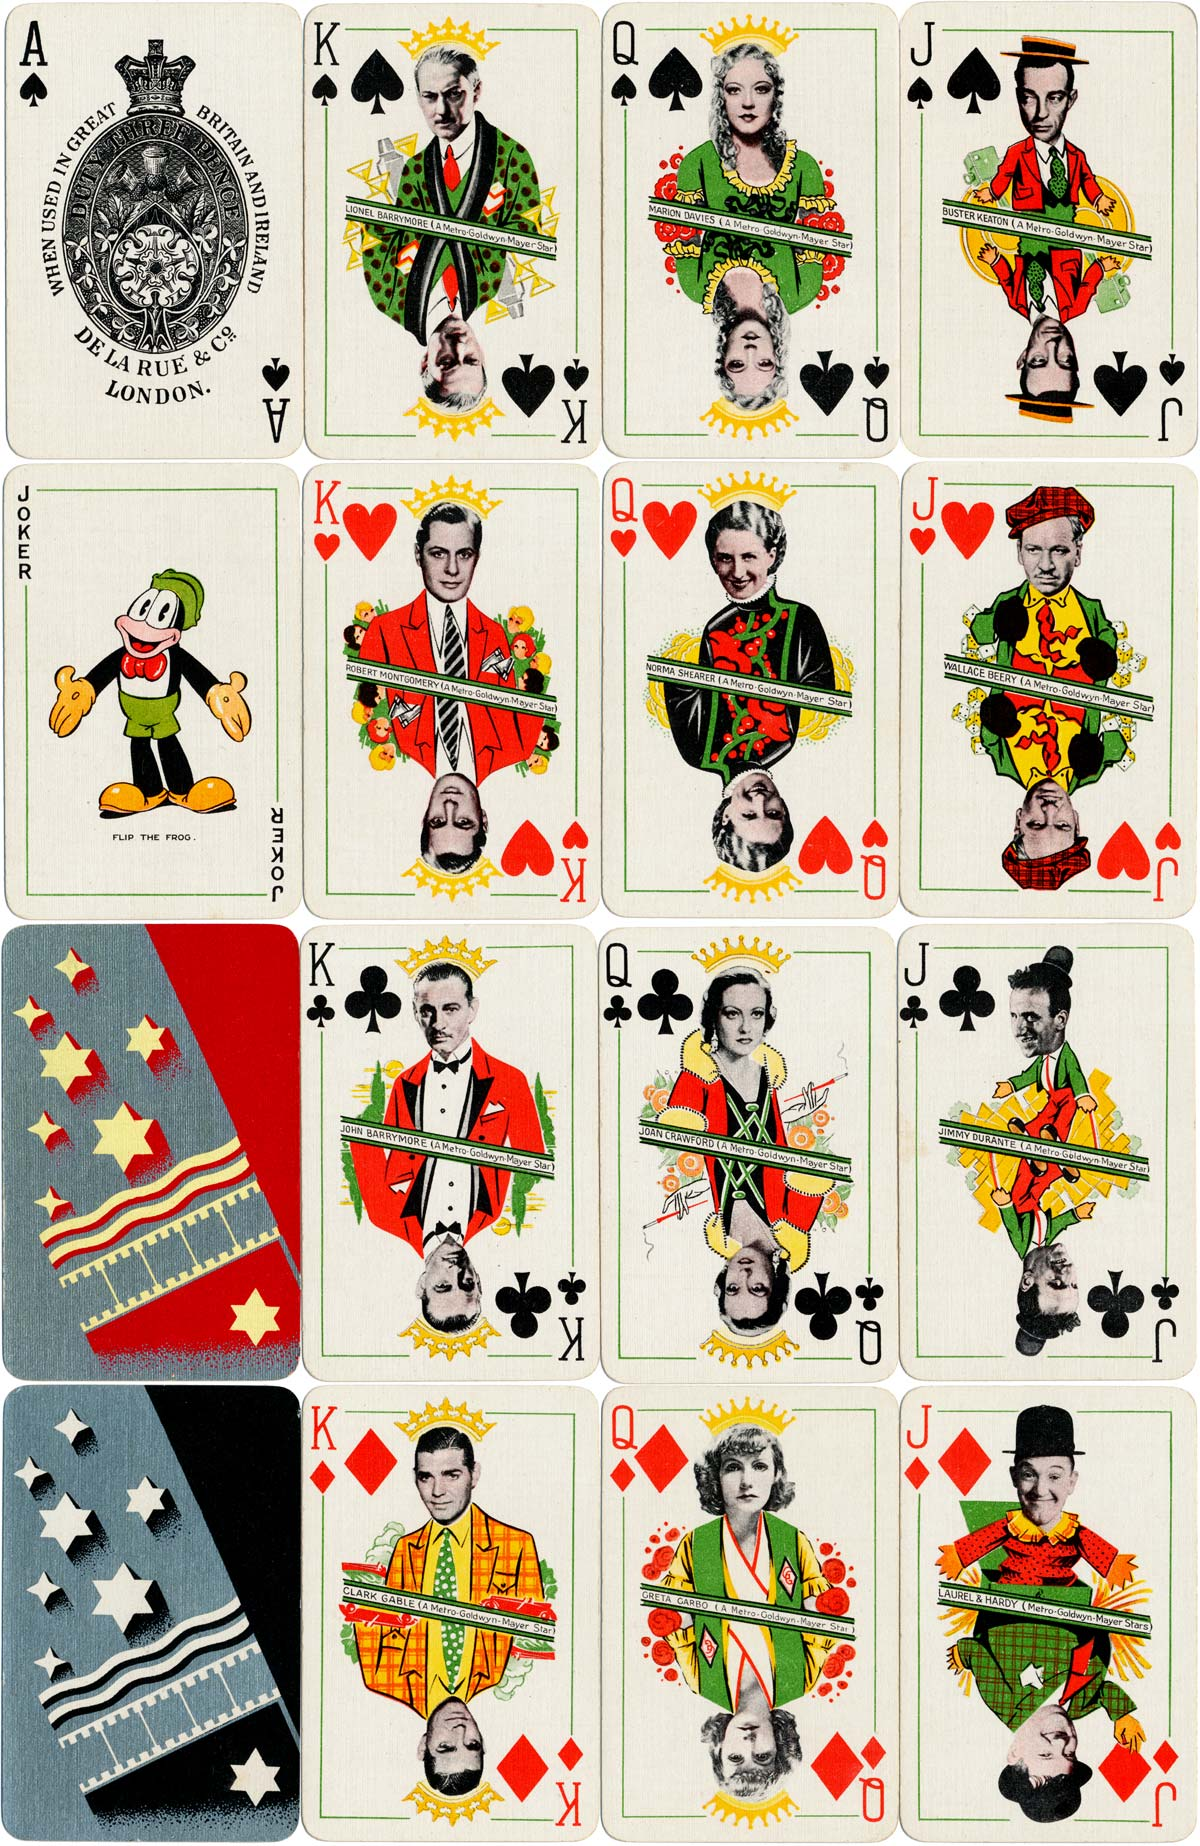 'Film Star Playing Cards' for Metro-Goldwyn-Mayer manufactured by De la Rue & Co., London, 1933